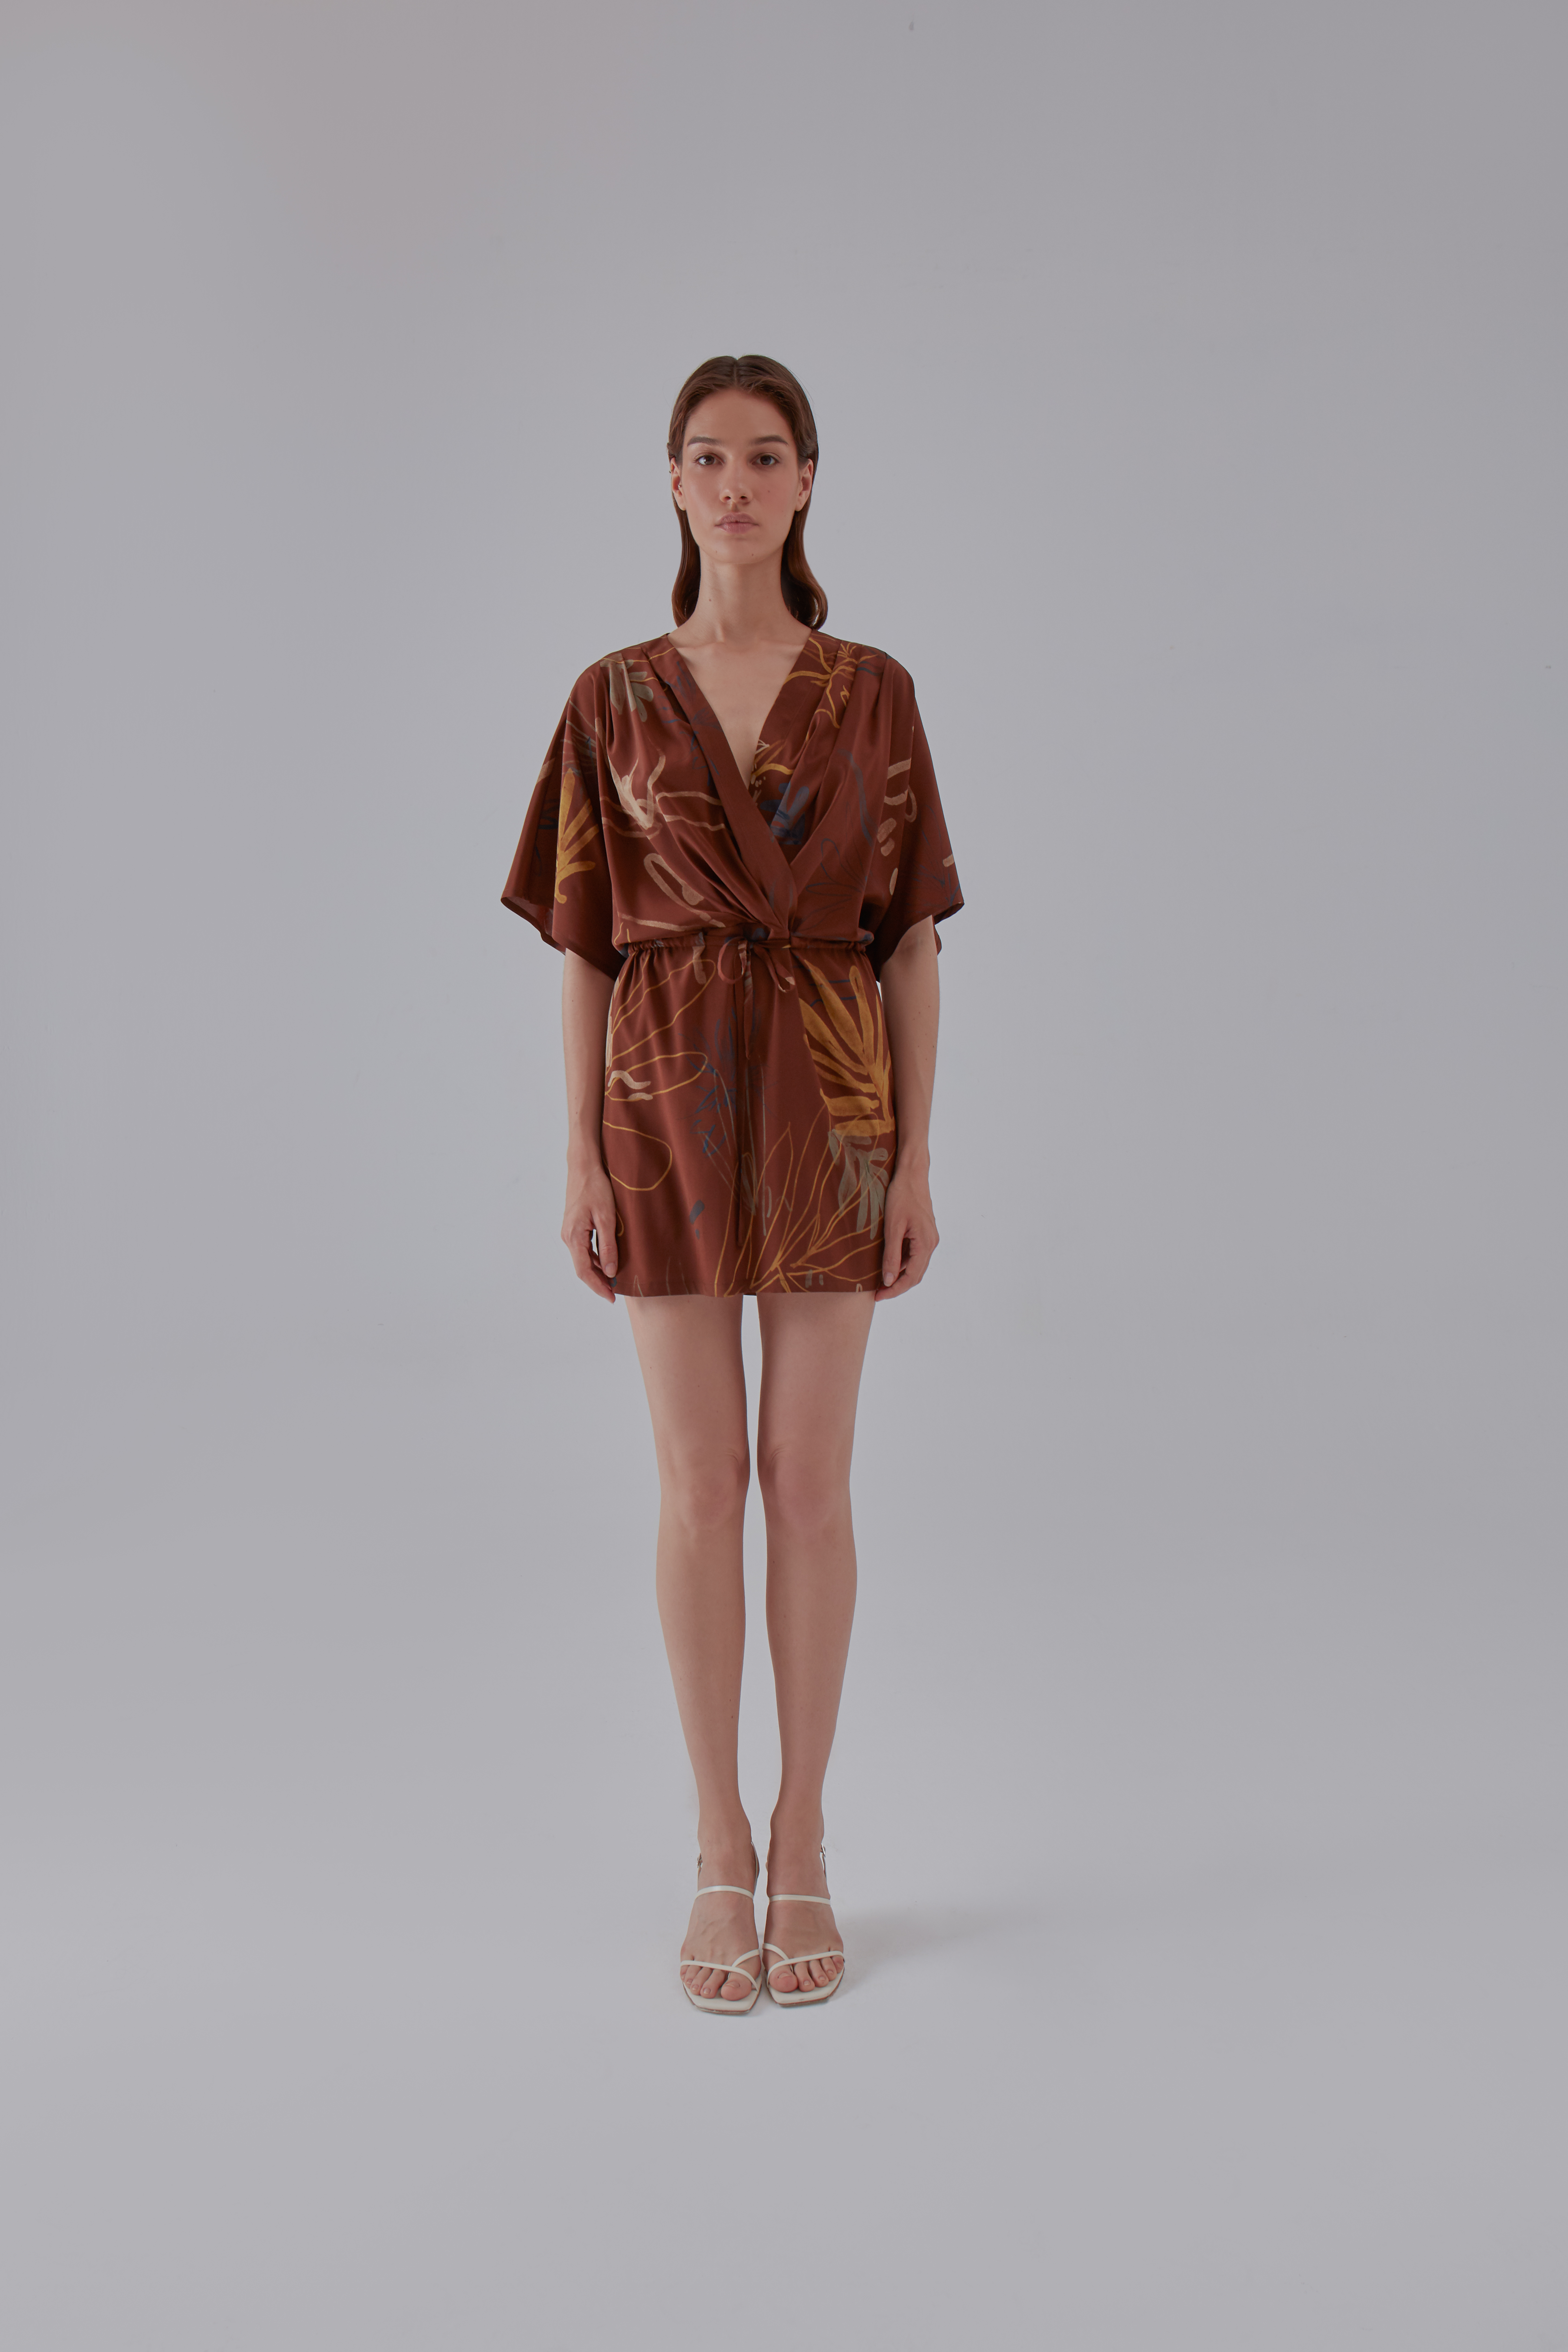 Vamos Dress - Brown by Laika on curated-crowd.com